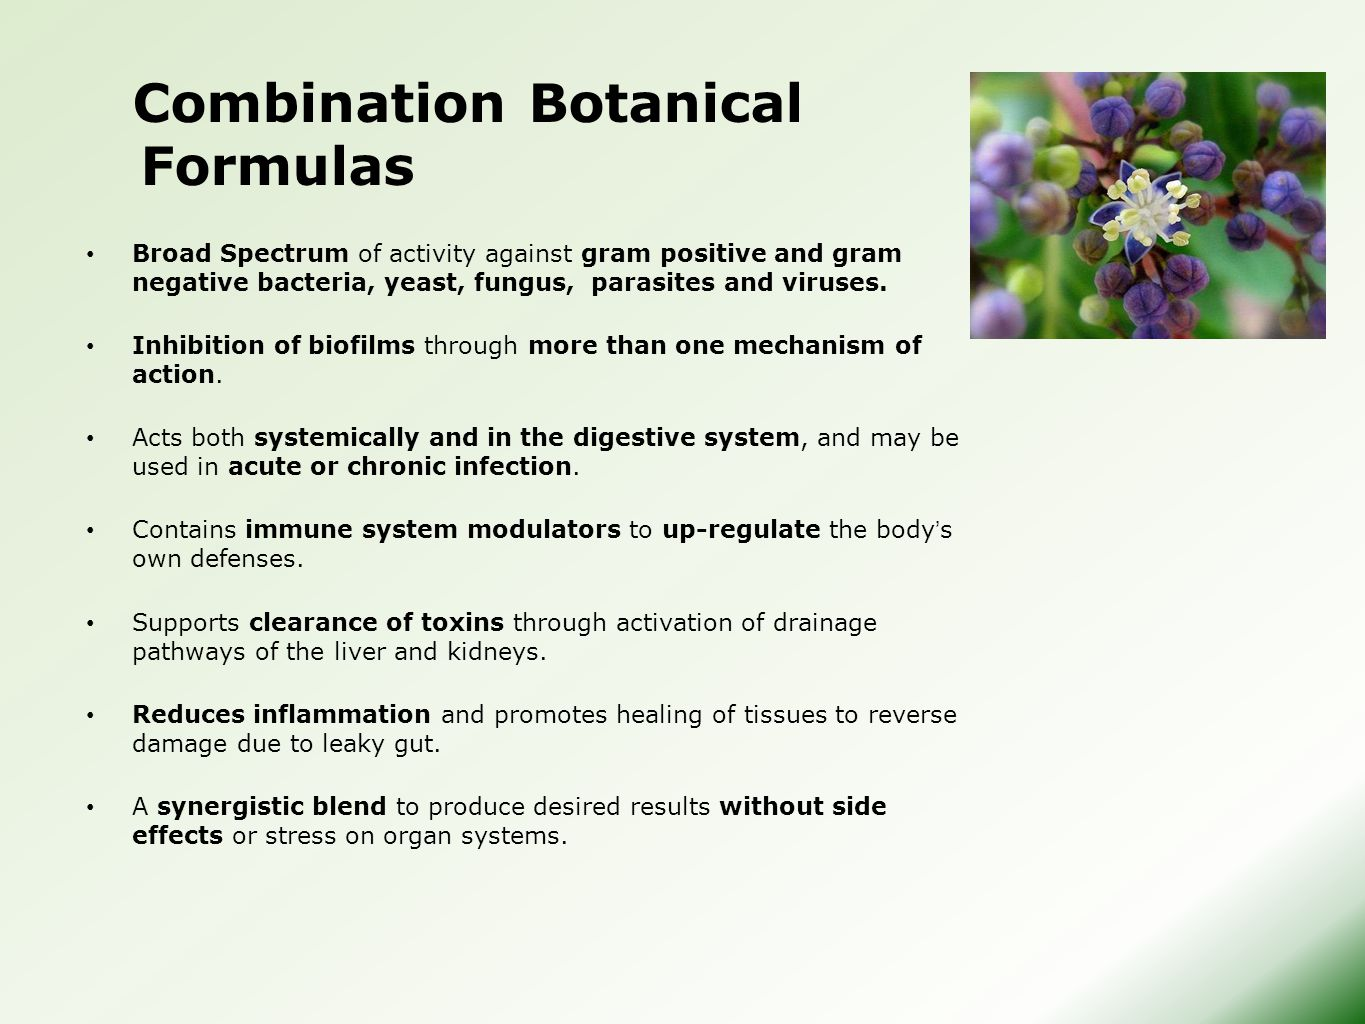 Combination Botanical Formulas Broad Spectrum of activity against gram positive and gram negative bacteria, yeast, fungus, parasites and viruses.